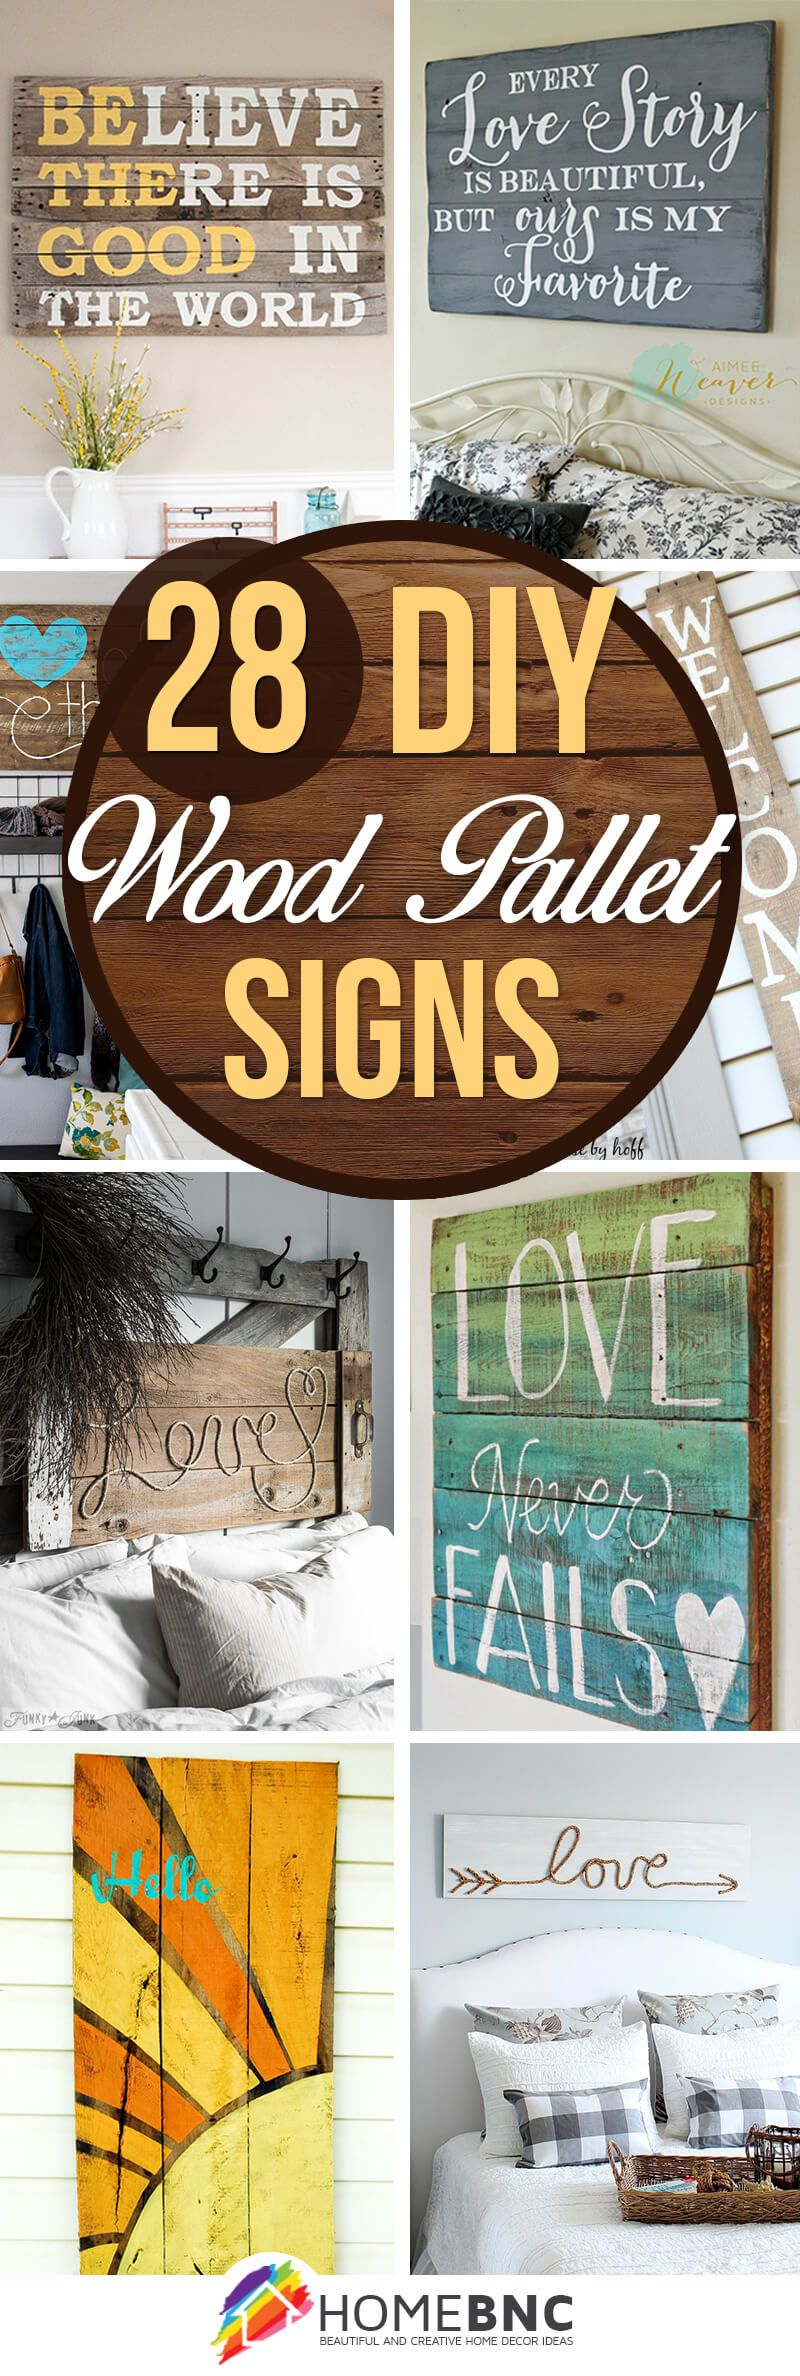 Wood Sign Design Ideas wooden sign wood sign design ideas 28 Fun Diy Pallet Sign Projects You Should Try